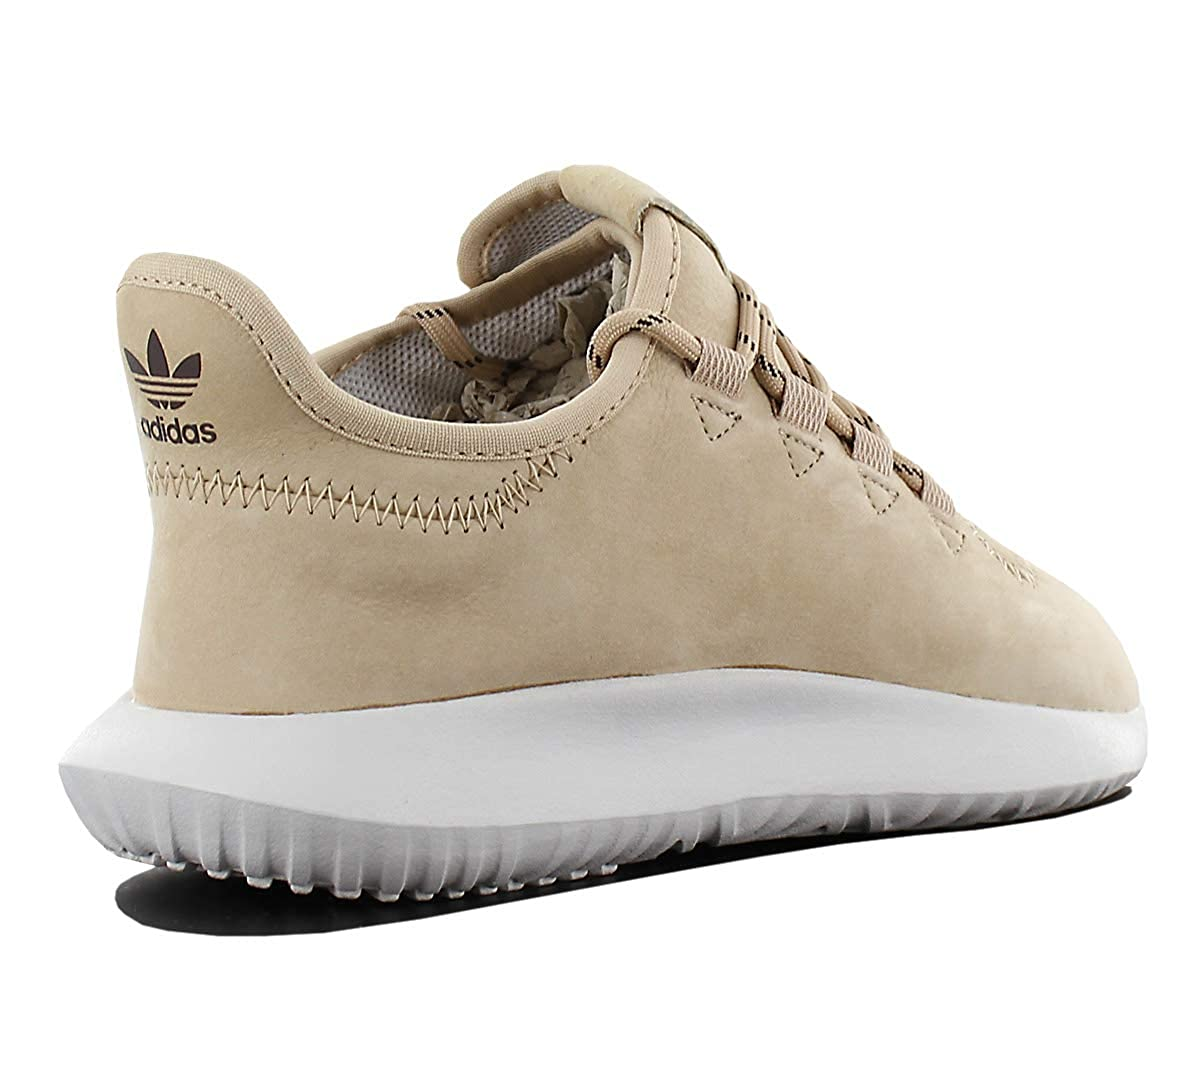 31534bfdcaaaa0 adidas Mens Originals Tubular Shadow Trainers in Cream- Premium Suede  One-Piece  Amazon.co.uk  Shoes   Bags